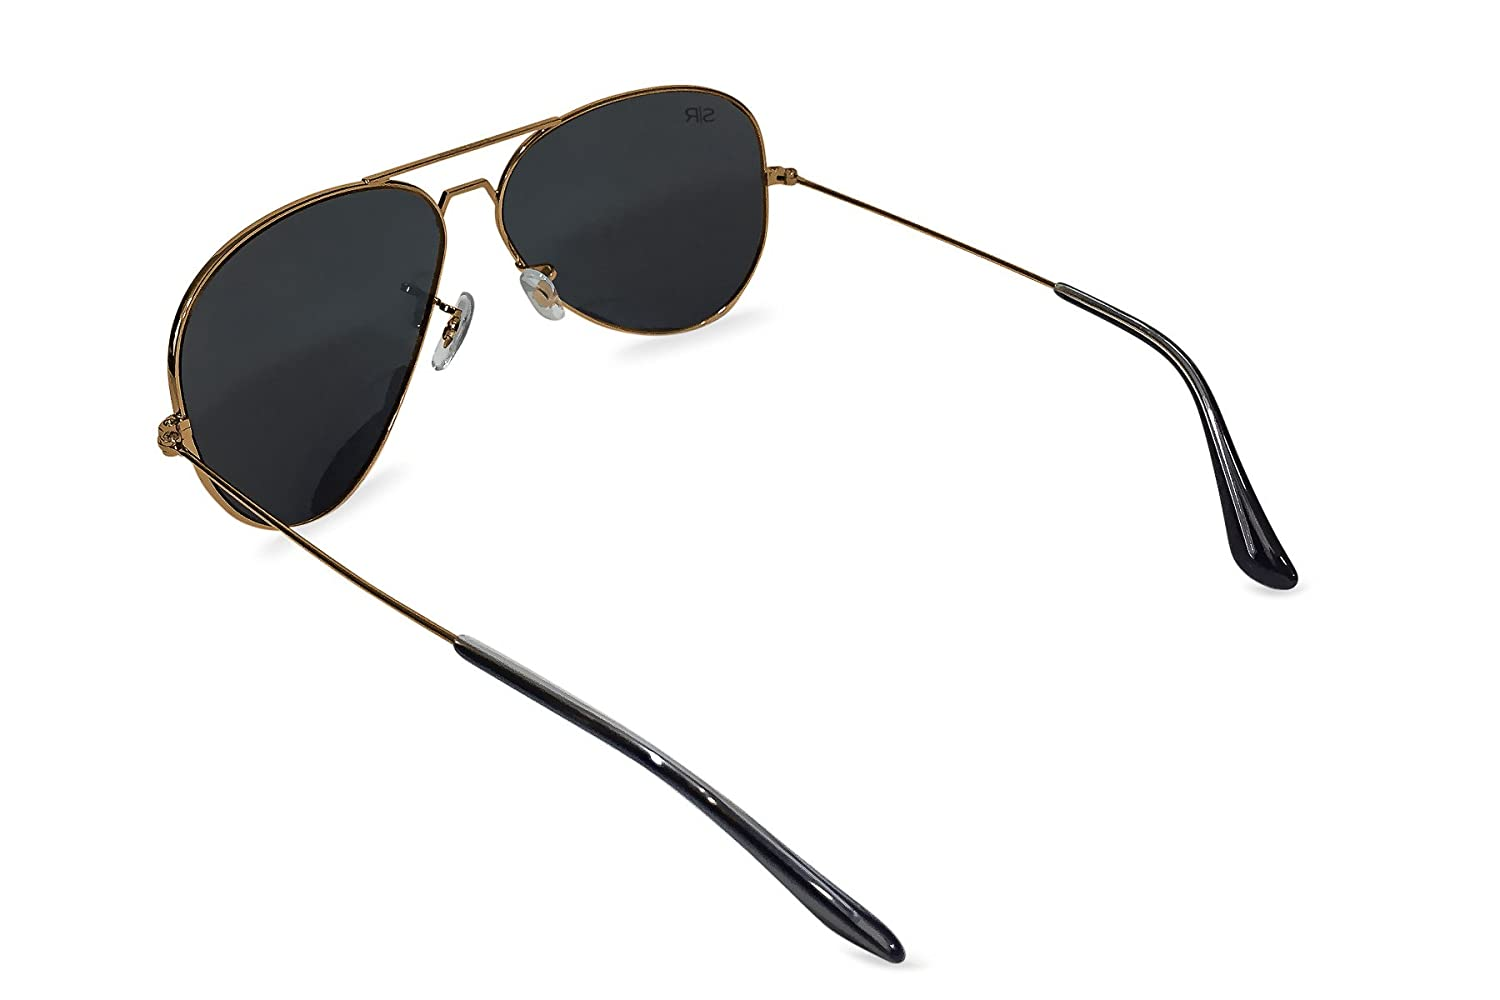 Amazon.com: Shady Rays Aviator Elite Polarized Metal Sunglasses Black Gold- Small: Clothing